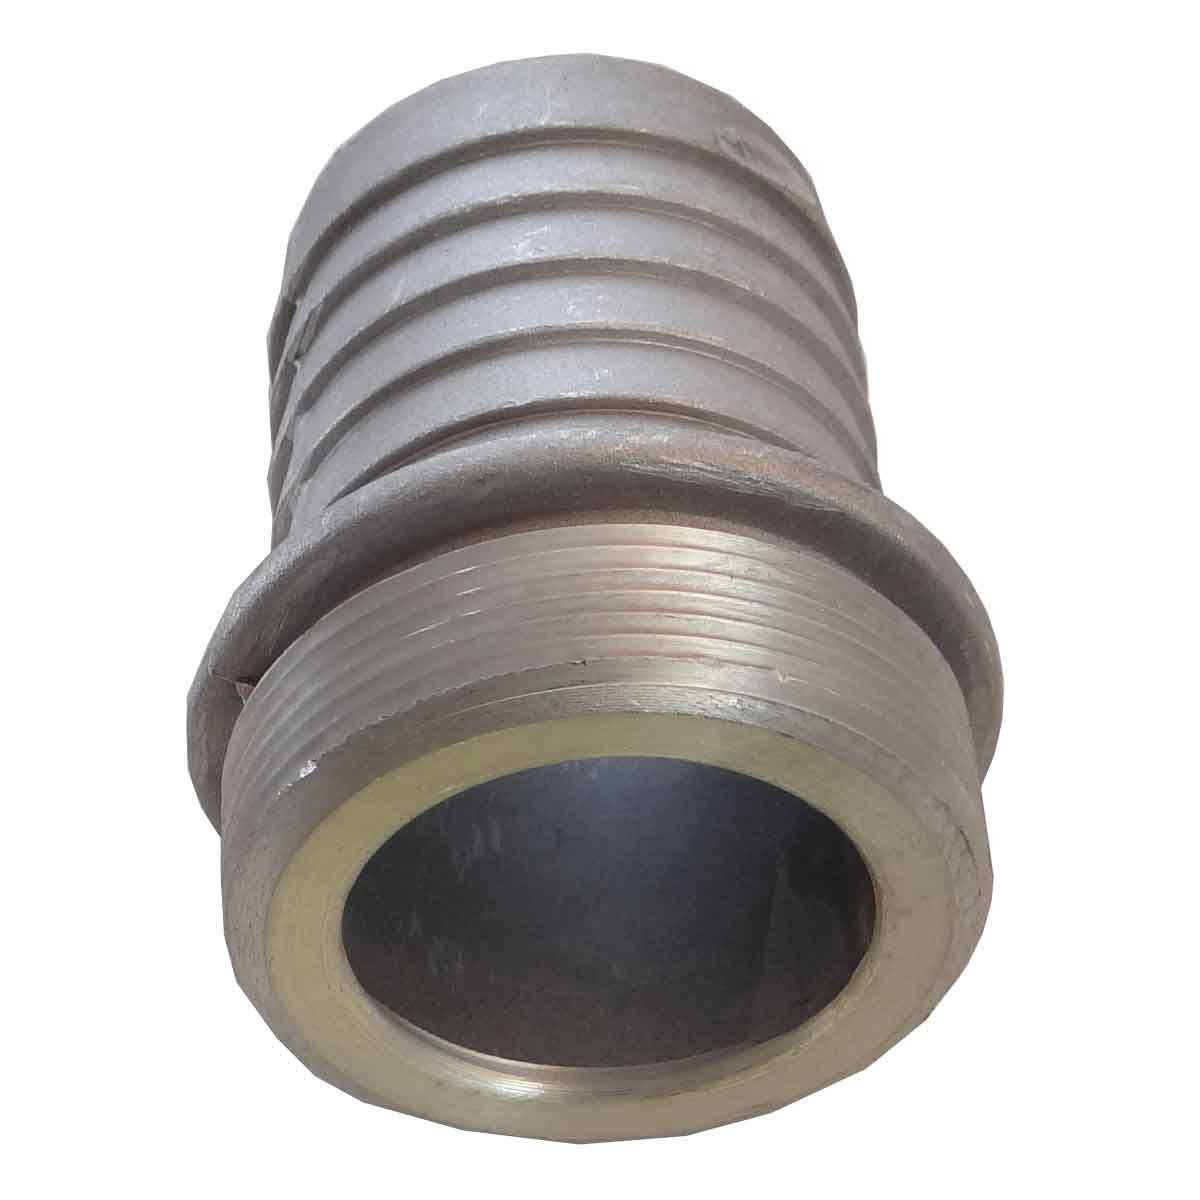 5000026918 Wacker Neuson Strainer 2in Hose coupling